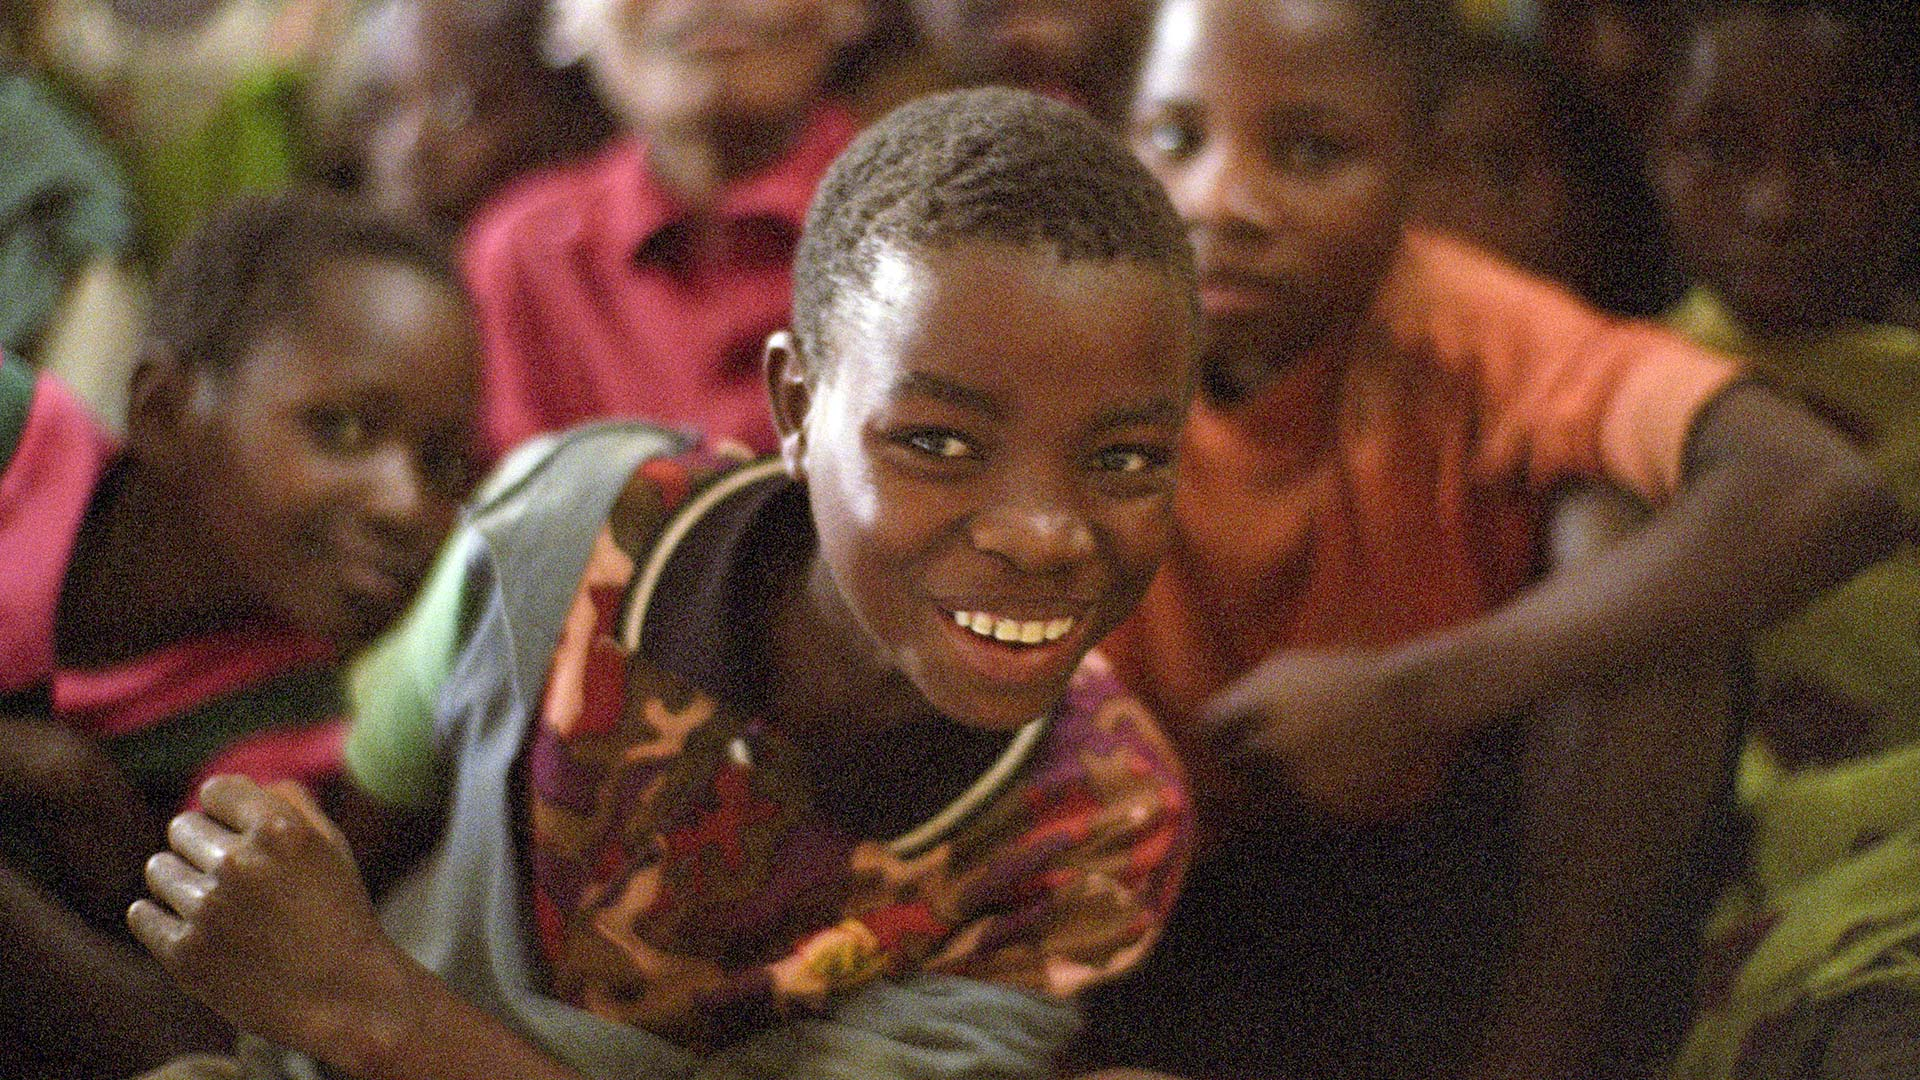 Smiling Malawian children